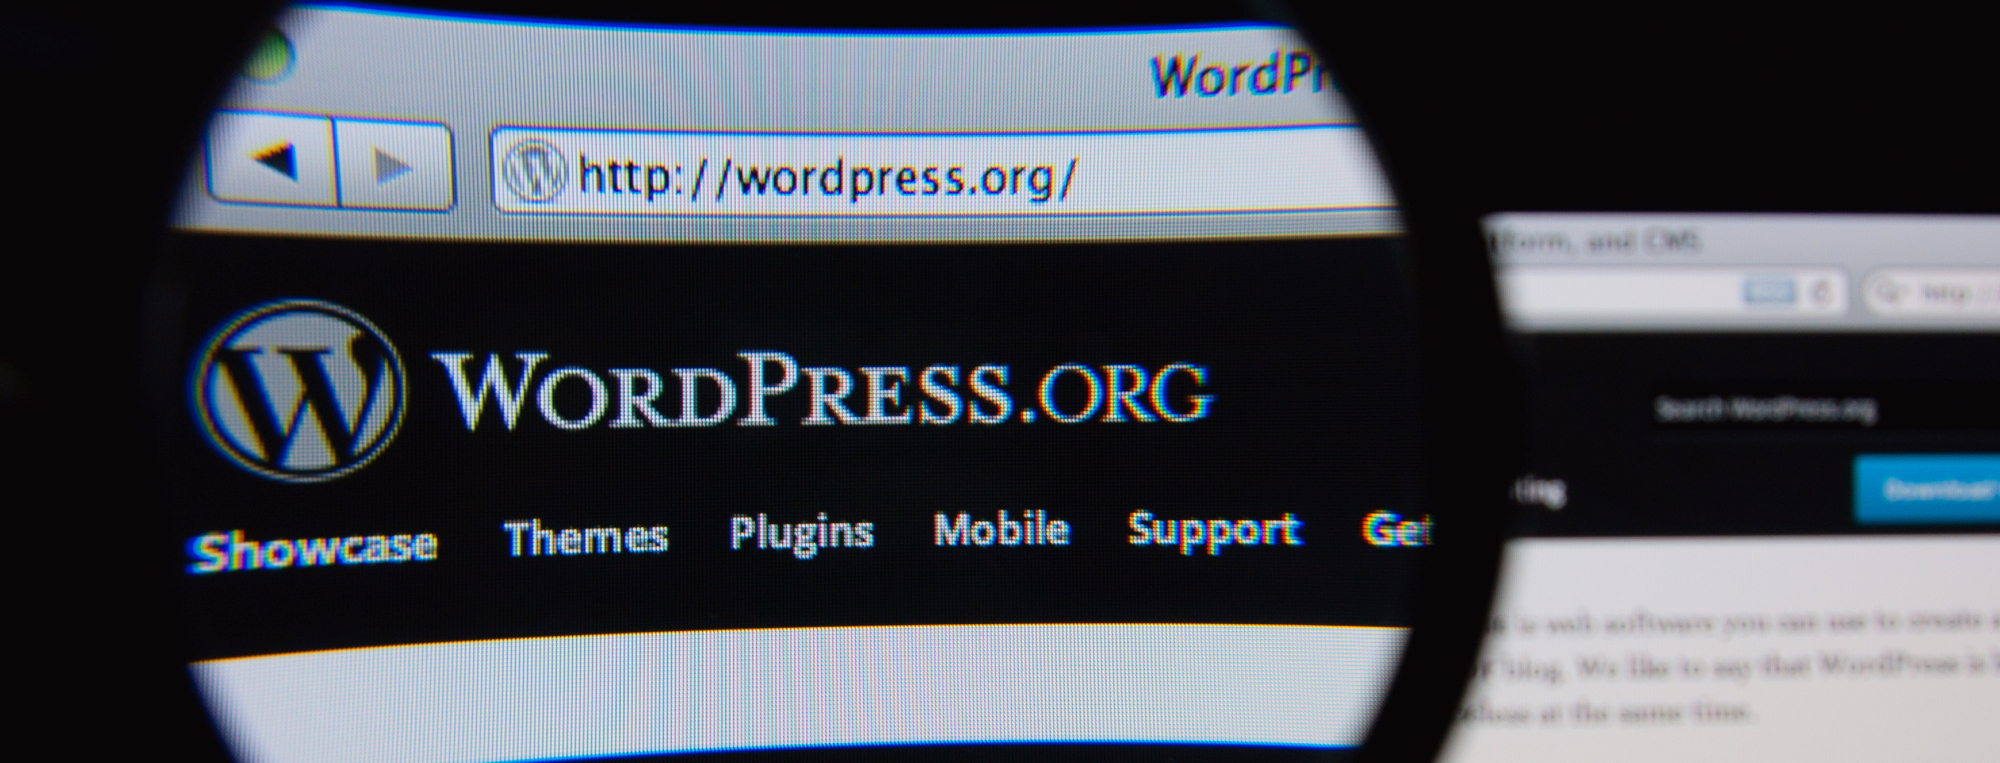 If you use WordPress, you need to know about this button - The Next Web